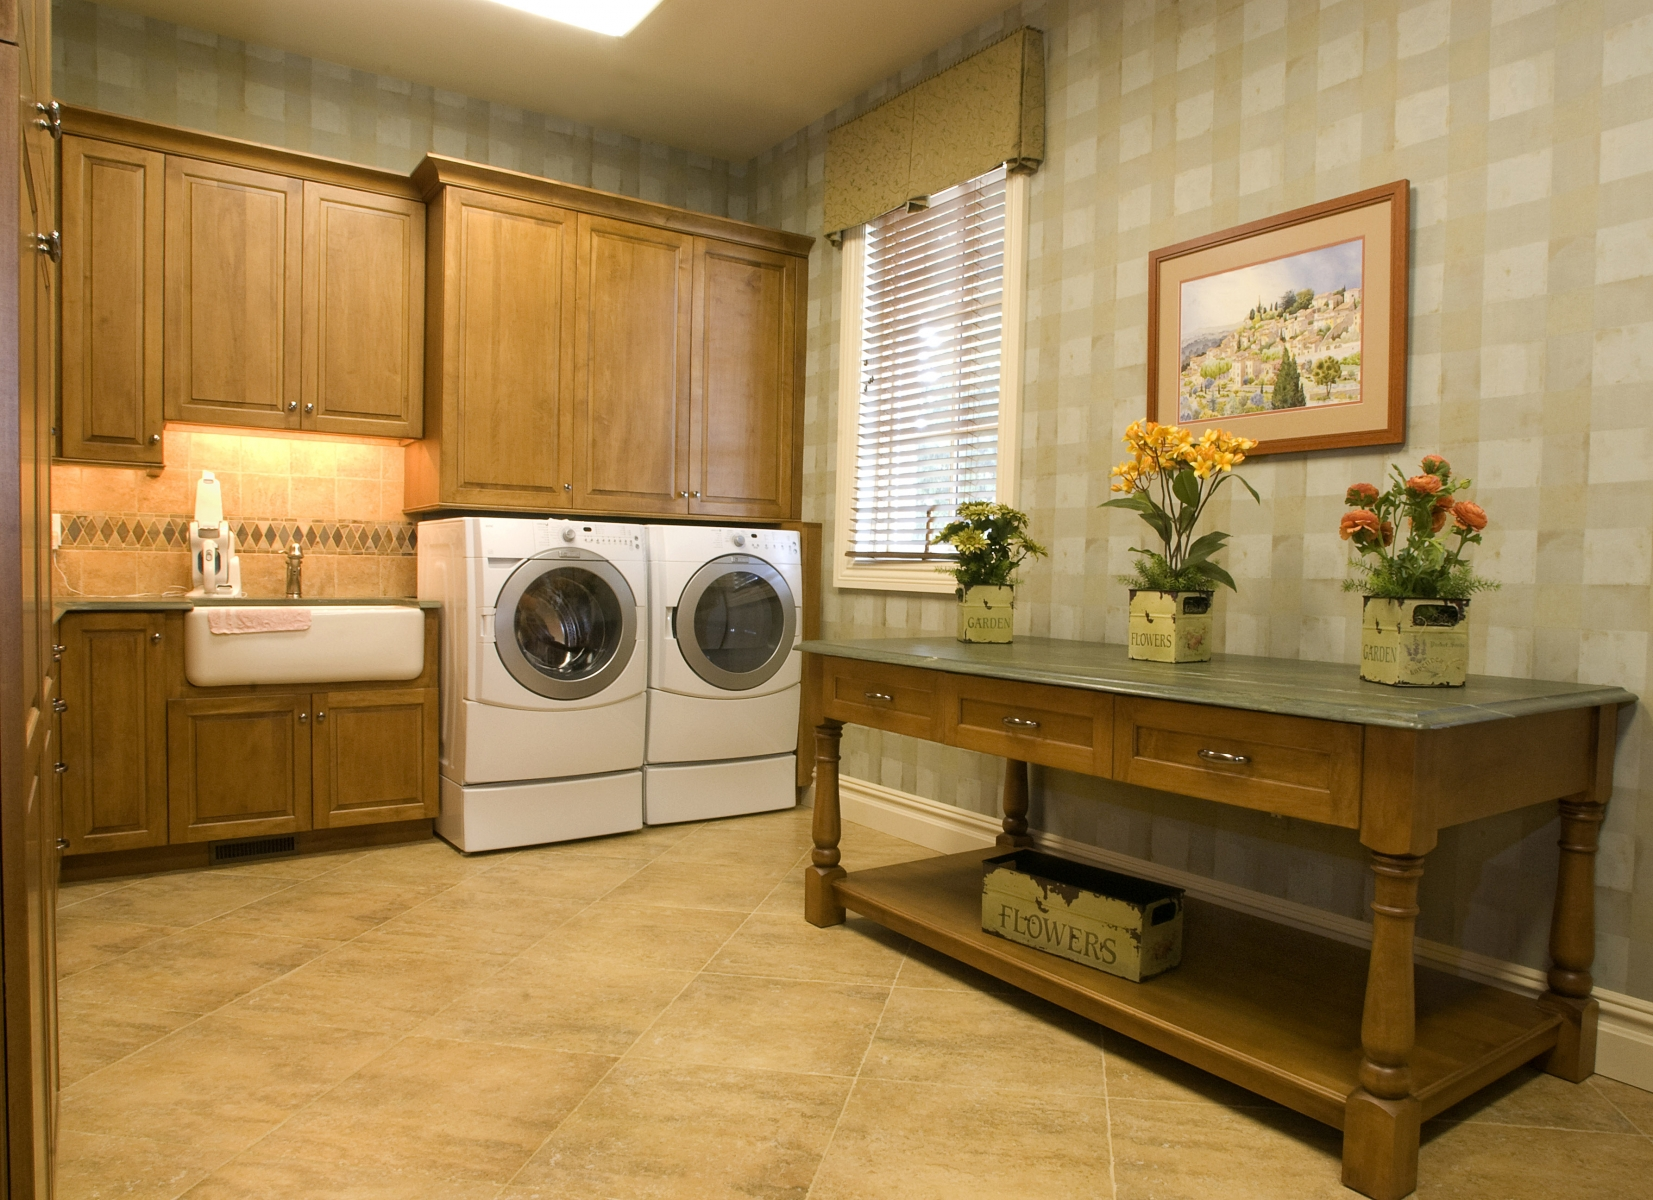 Major Kitchen Appliances amp Laundry Appliances  Hudsons Bay